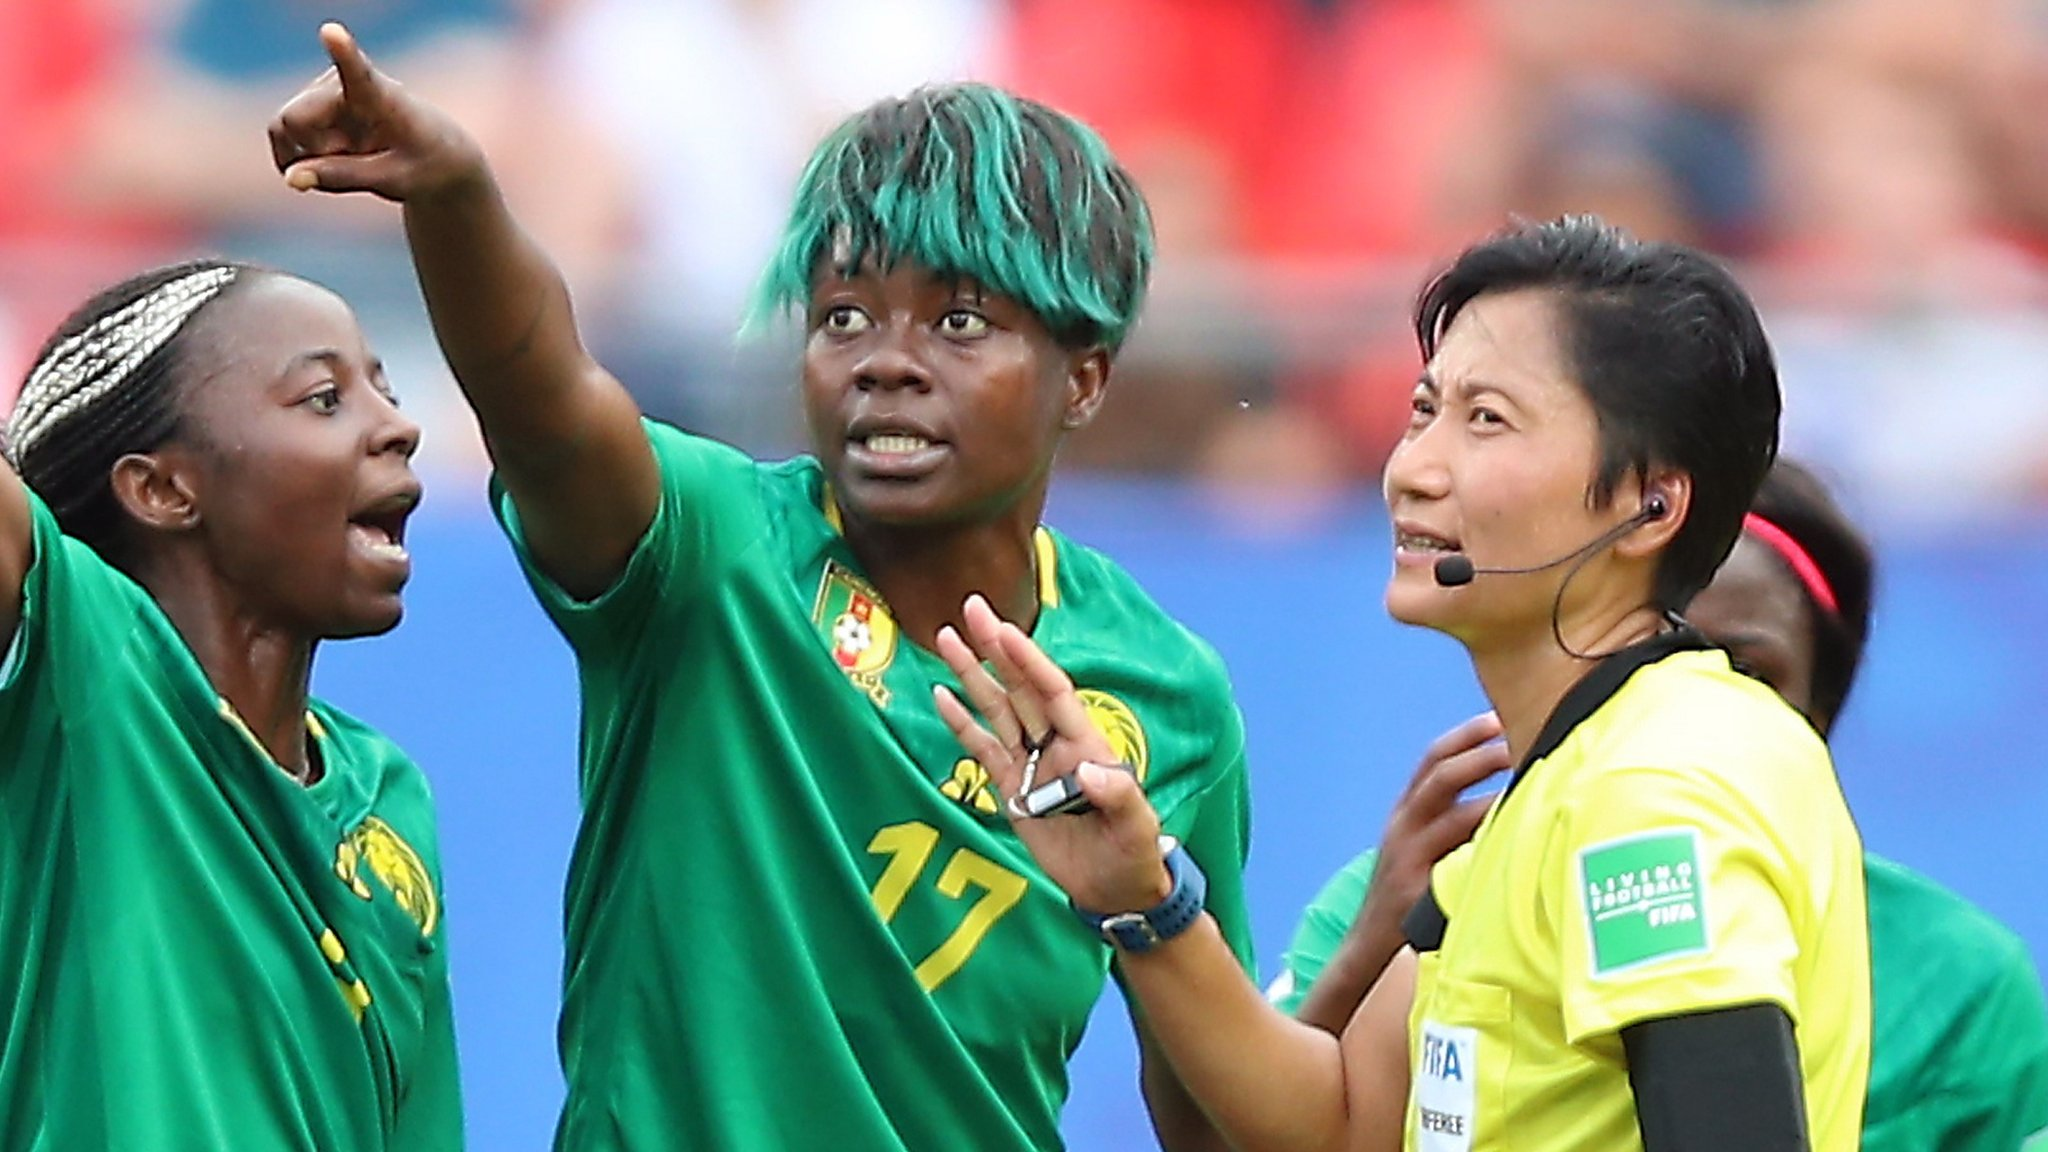 Women's World Cup 2019: BBC pundits on 'extraordinary scenes' as Cameroon fume over VAR decisions